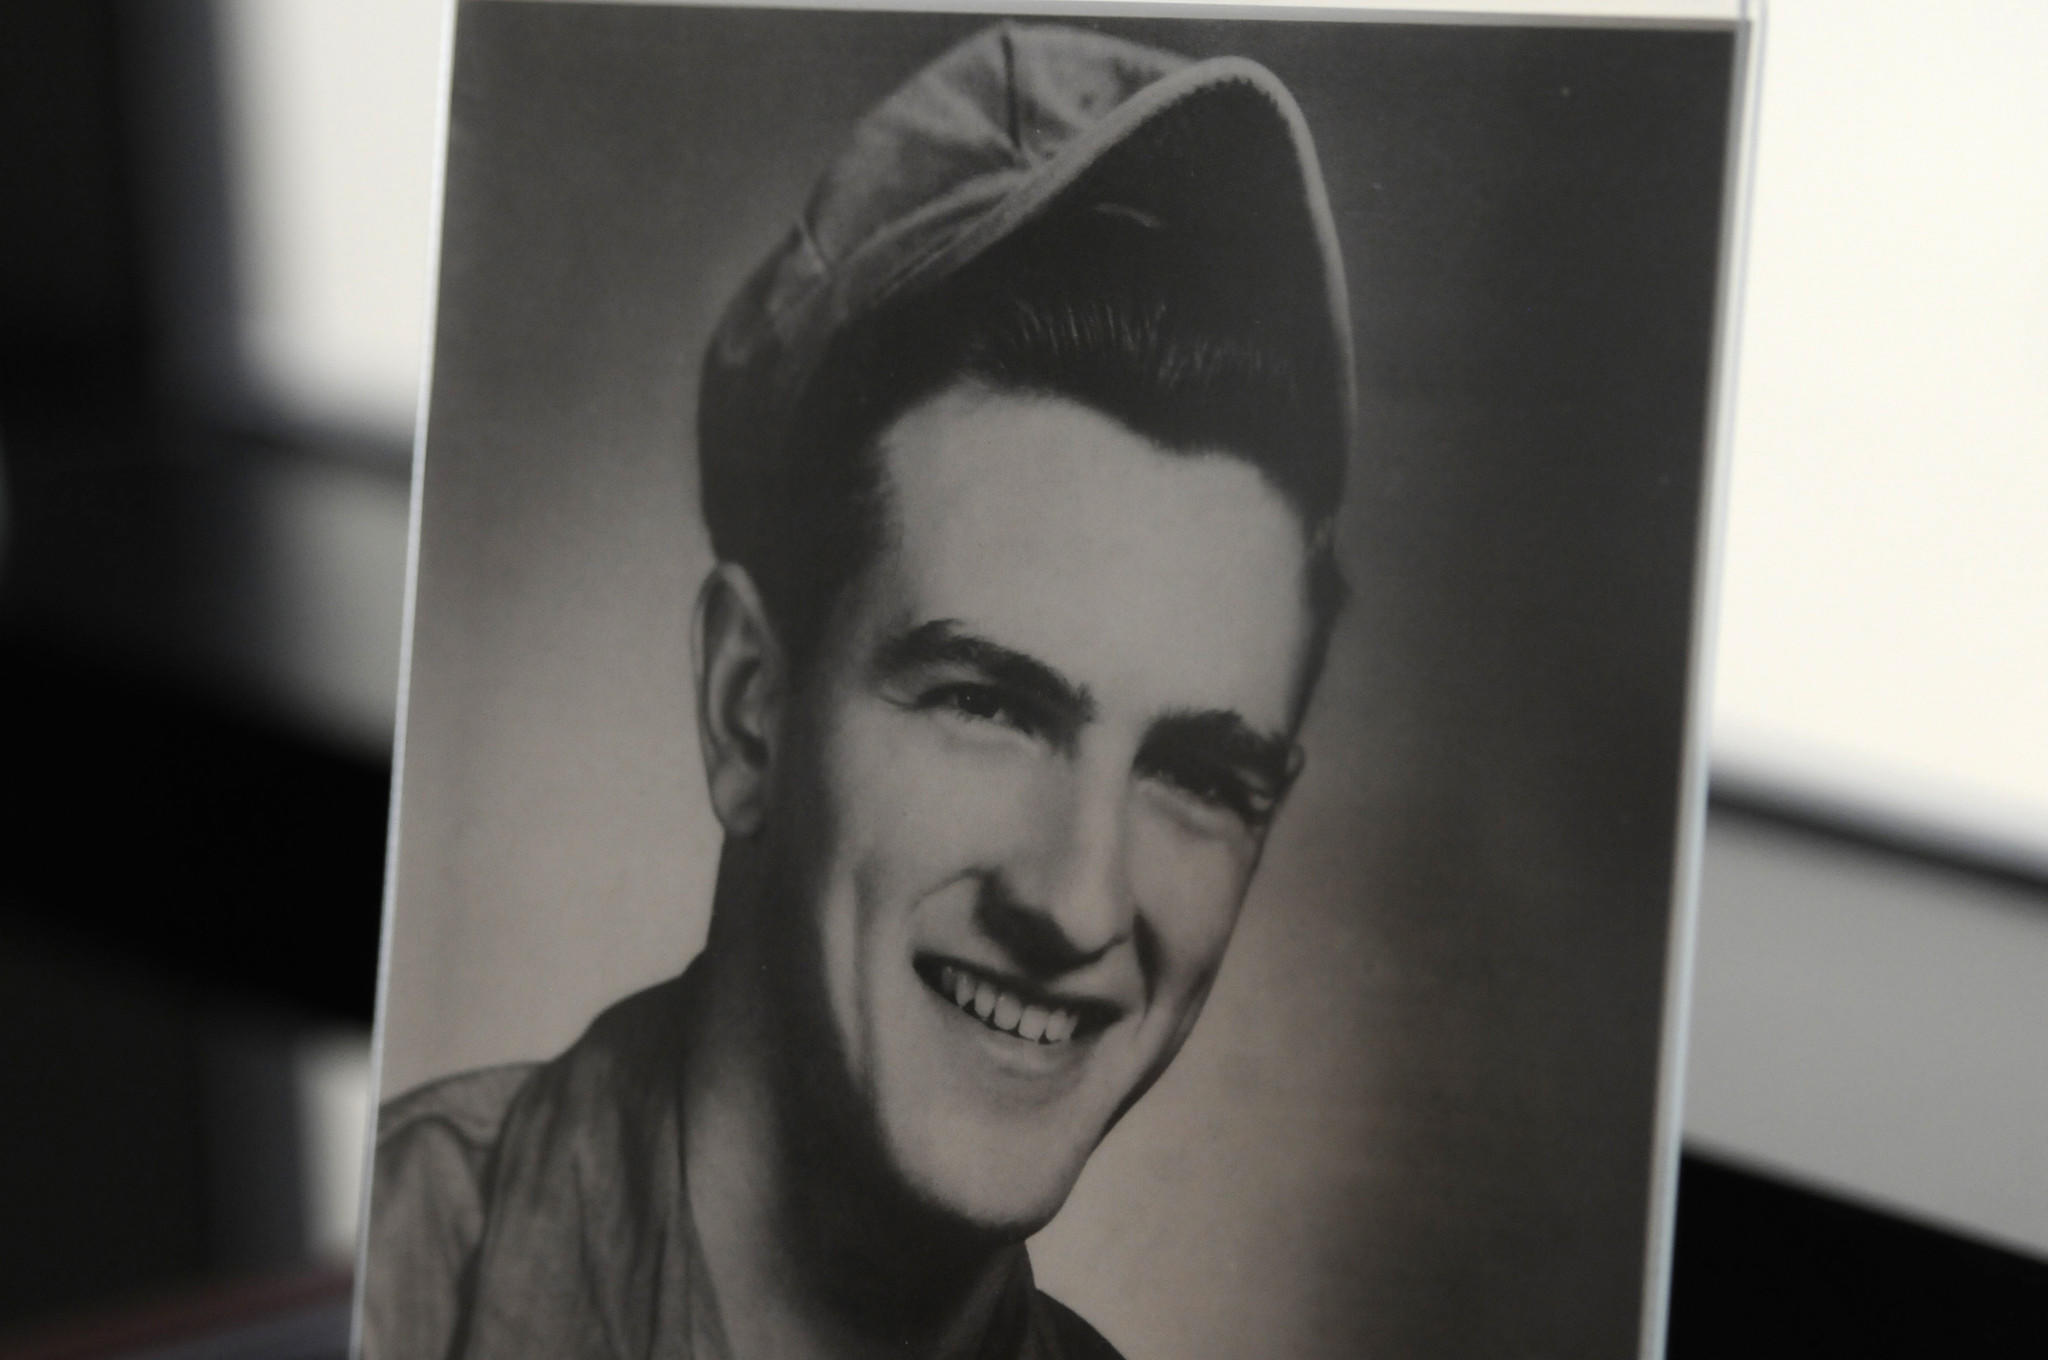 Mathew Caruso was killed in Korea on Dec. 6, 1950.